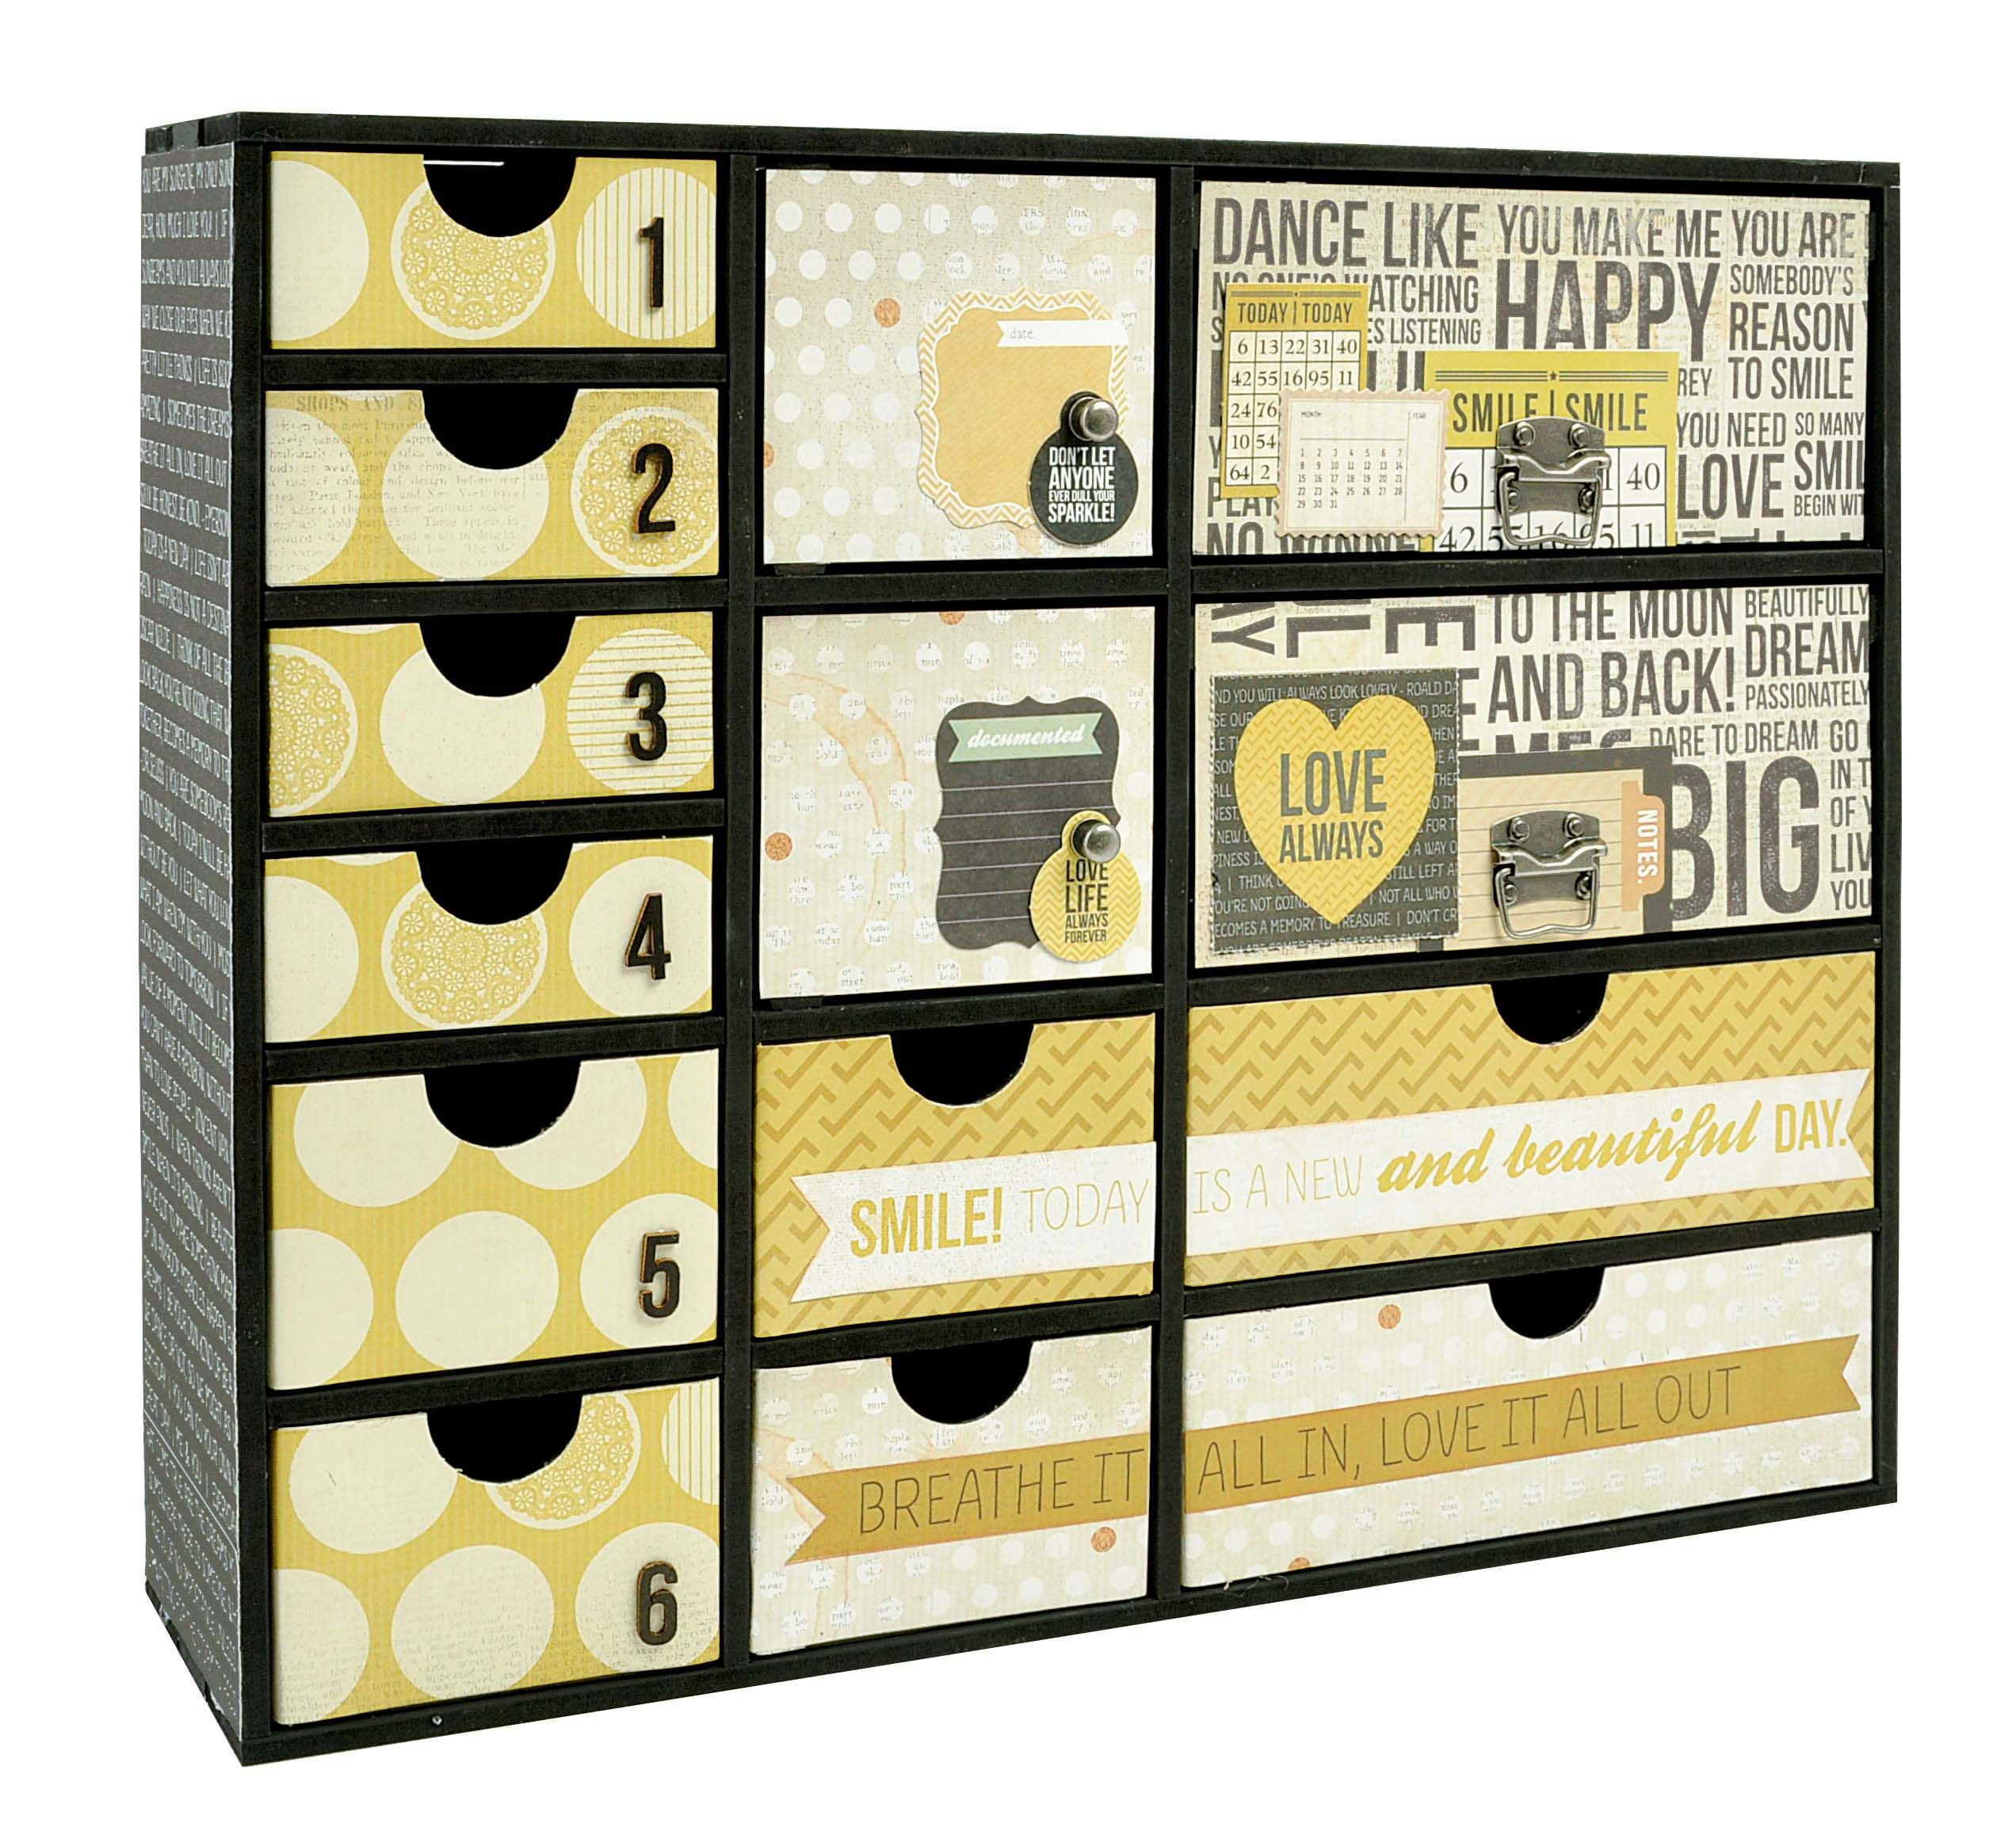 Take Note Is So Fantastic For Scrapping Btp This Complete Storage Unit Looks Amazing Pick Yours Up Today 3 Foam Board Crafts Space Crafts Diy Craft Projects